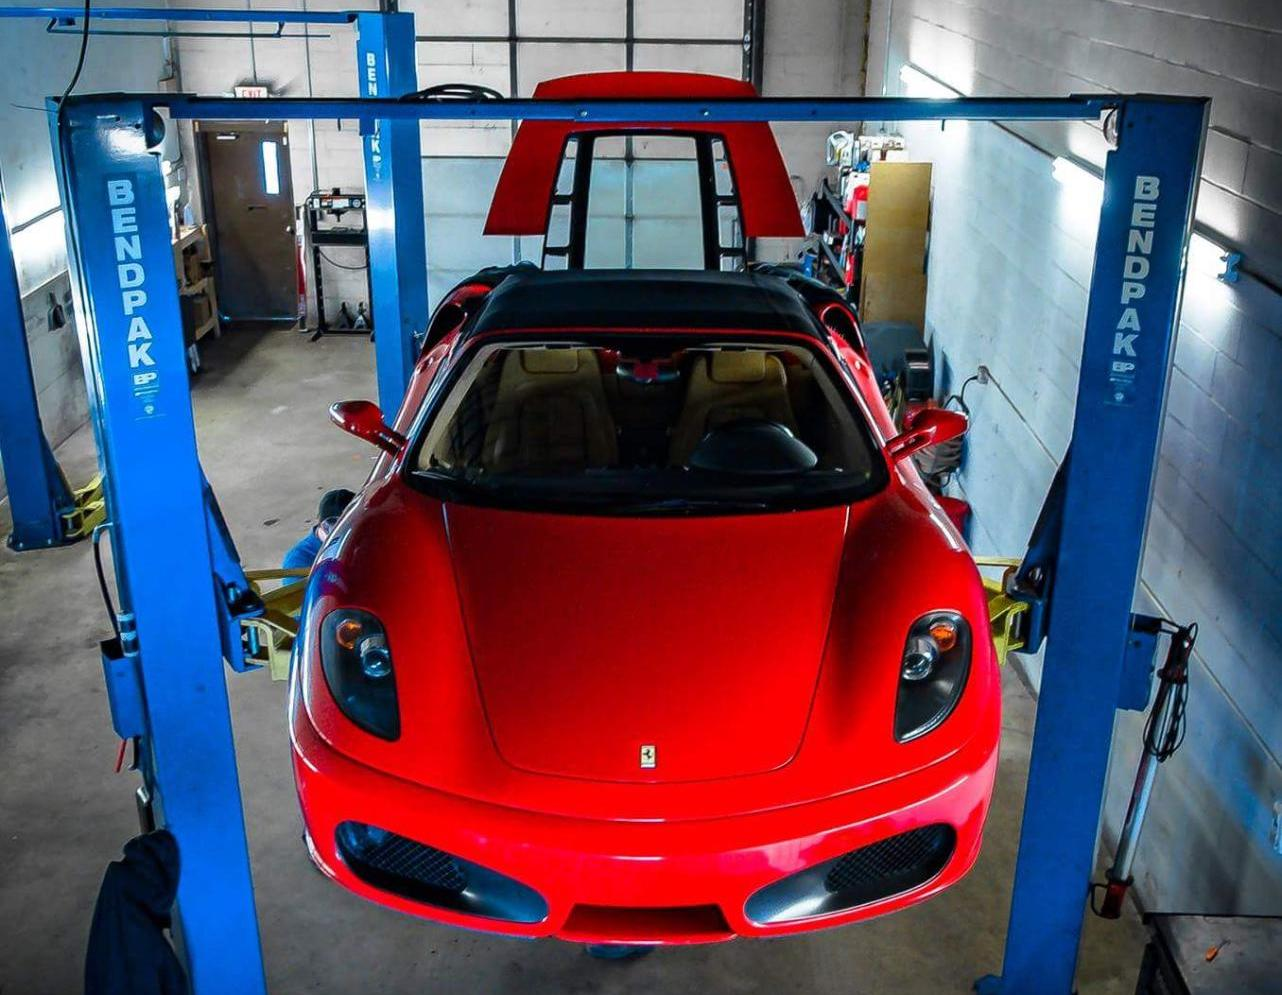 3 Things To Know About Choosing a Foreign Car Repair Shop